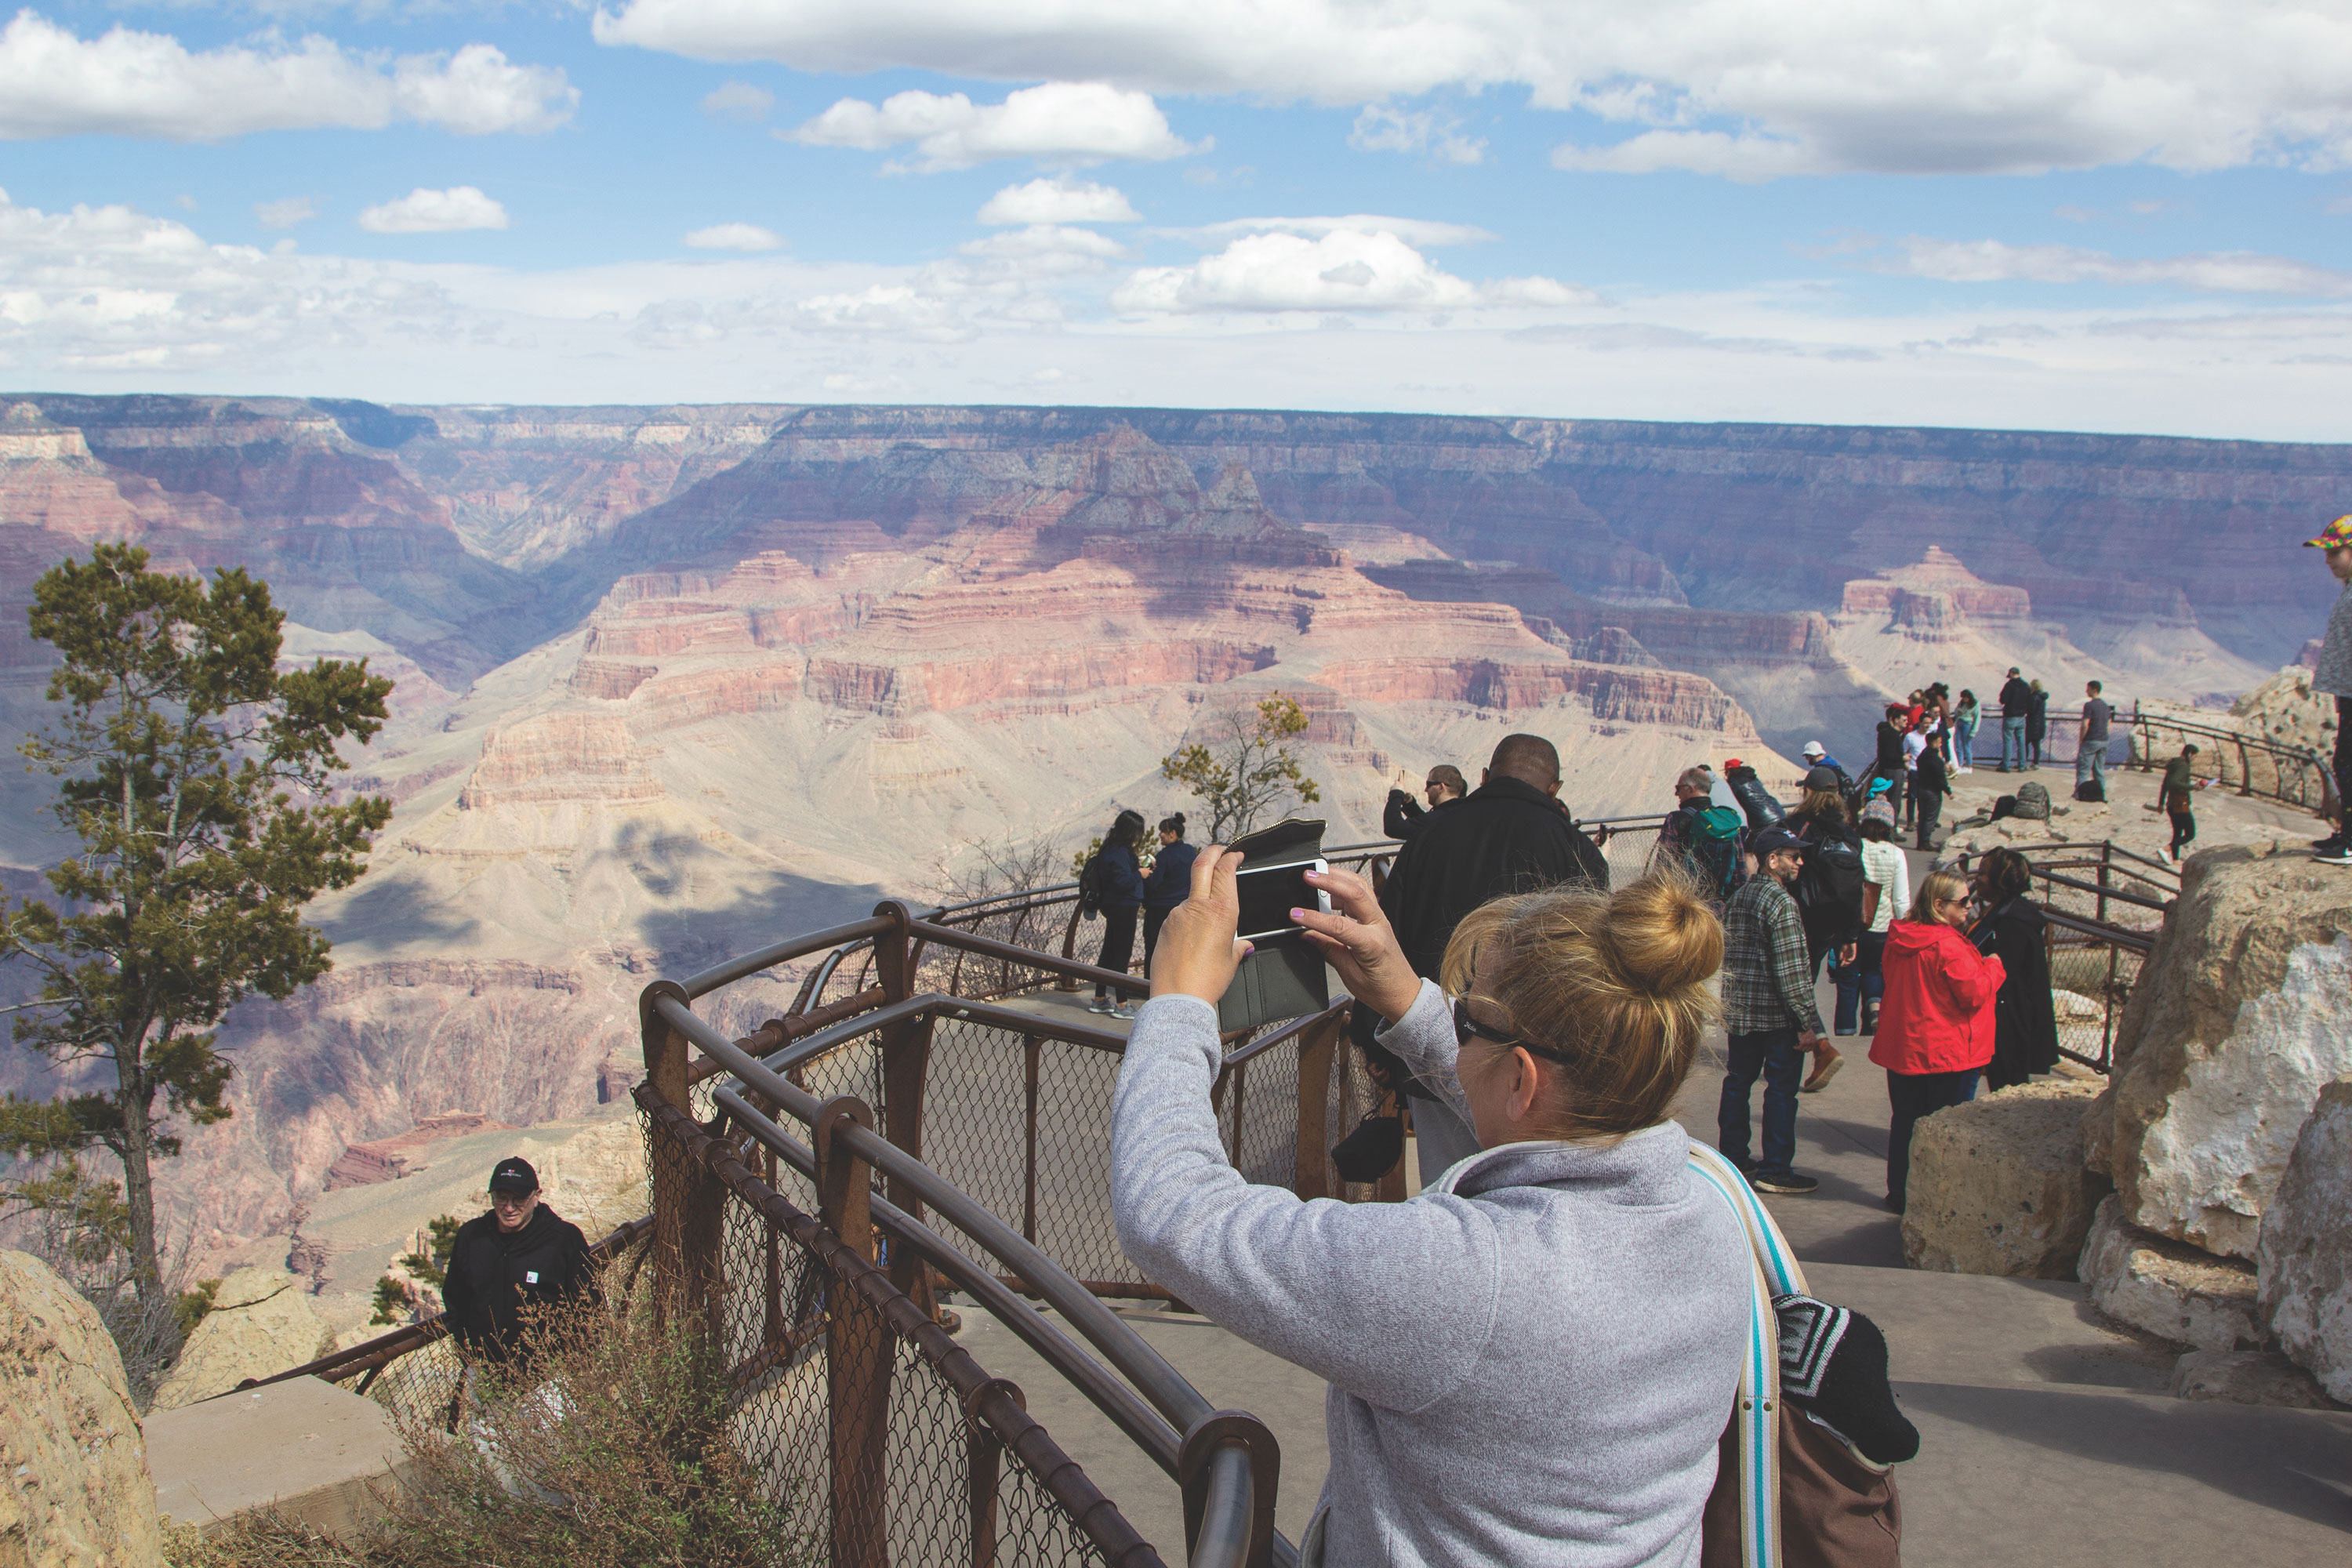 The writer's mom, Anja DesJardins, gets her first view and photos of the Grand Canyon at Desert View Watchtower.